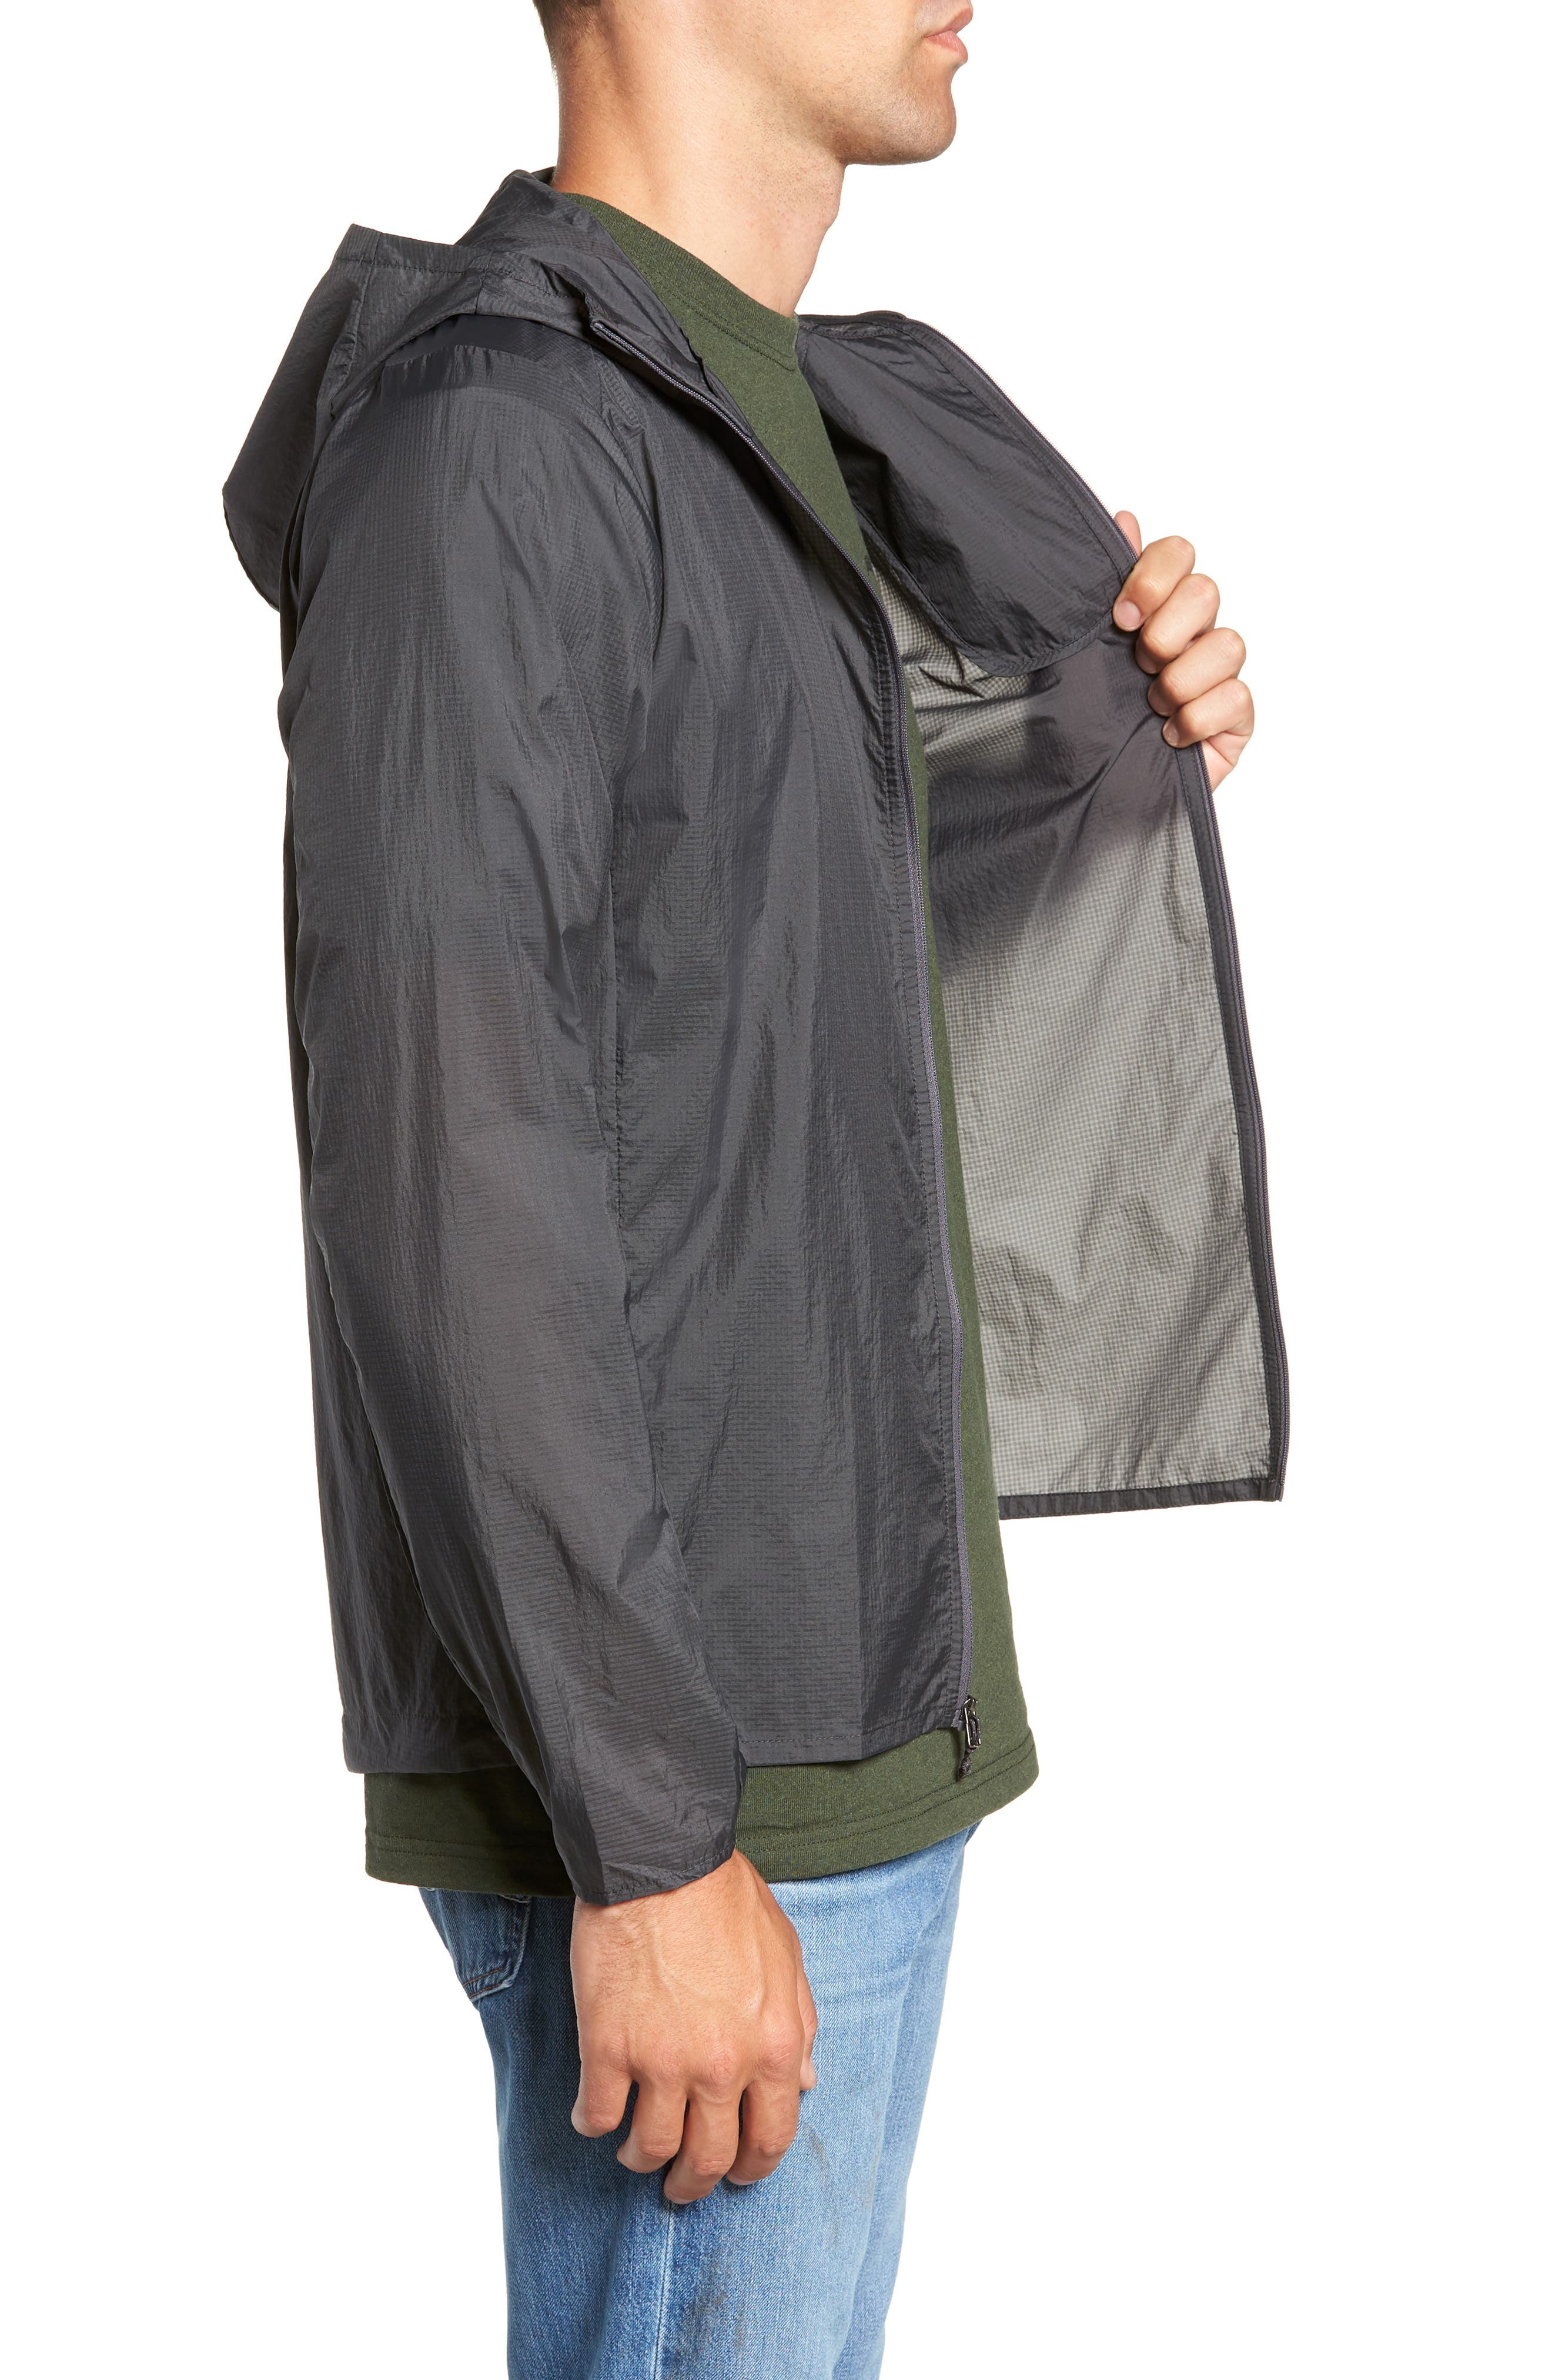 'Houdini' Slim Fit Water Repellent Hooded Jacket,                             Alternate thumbnail 3, color,                             FORGE GREY/ FORGE GREY